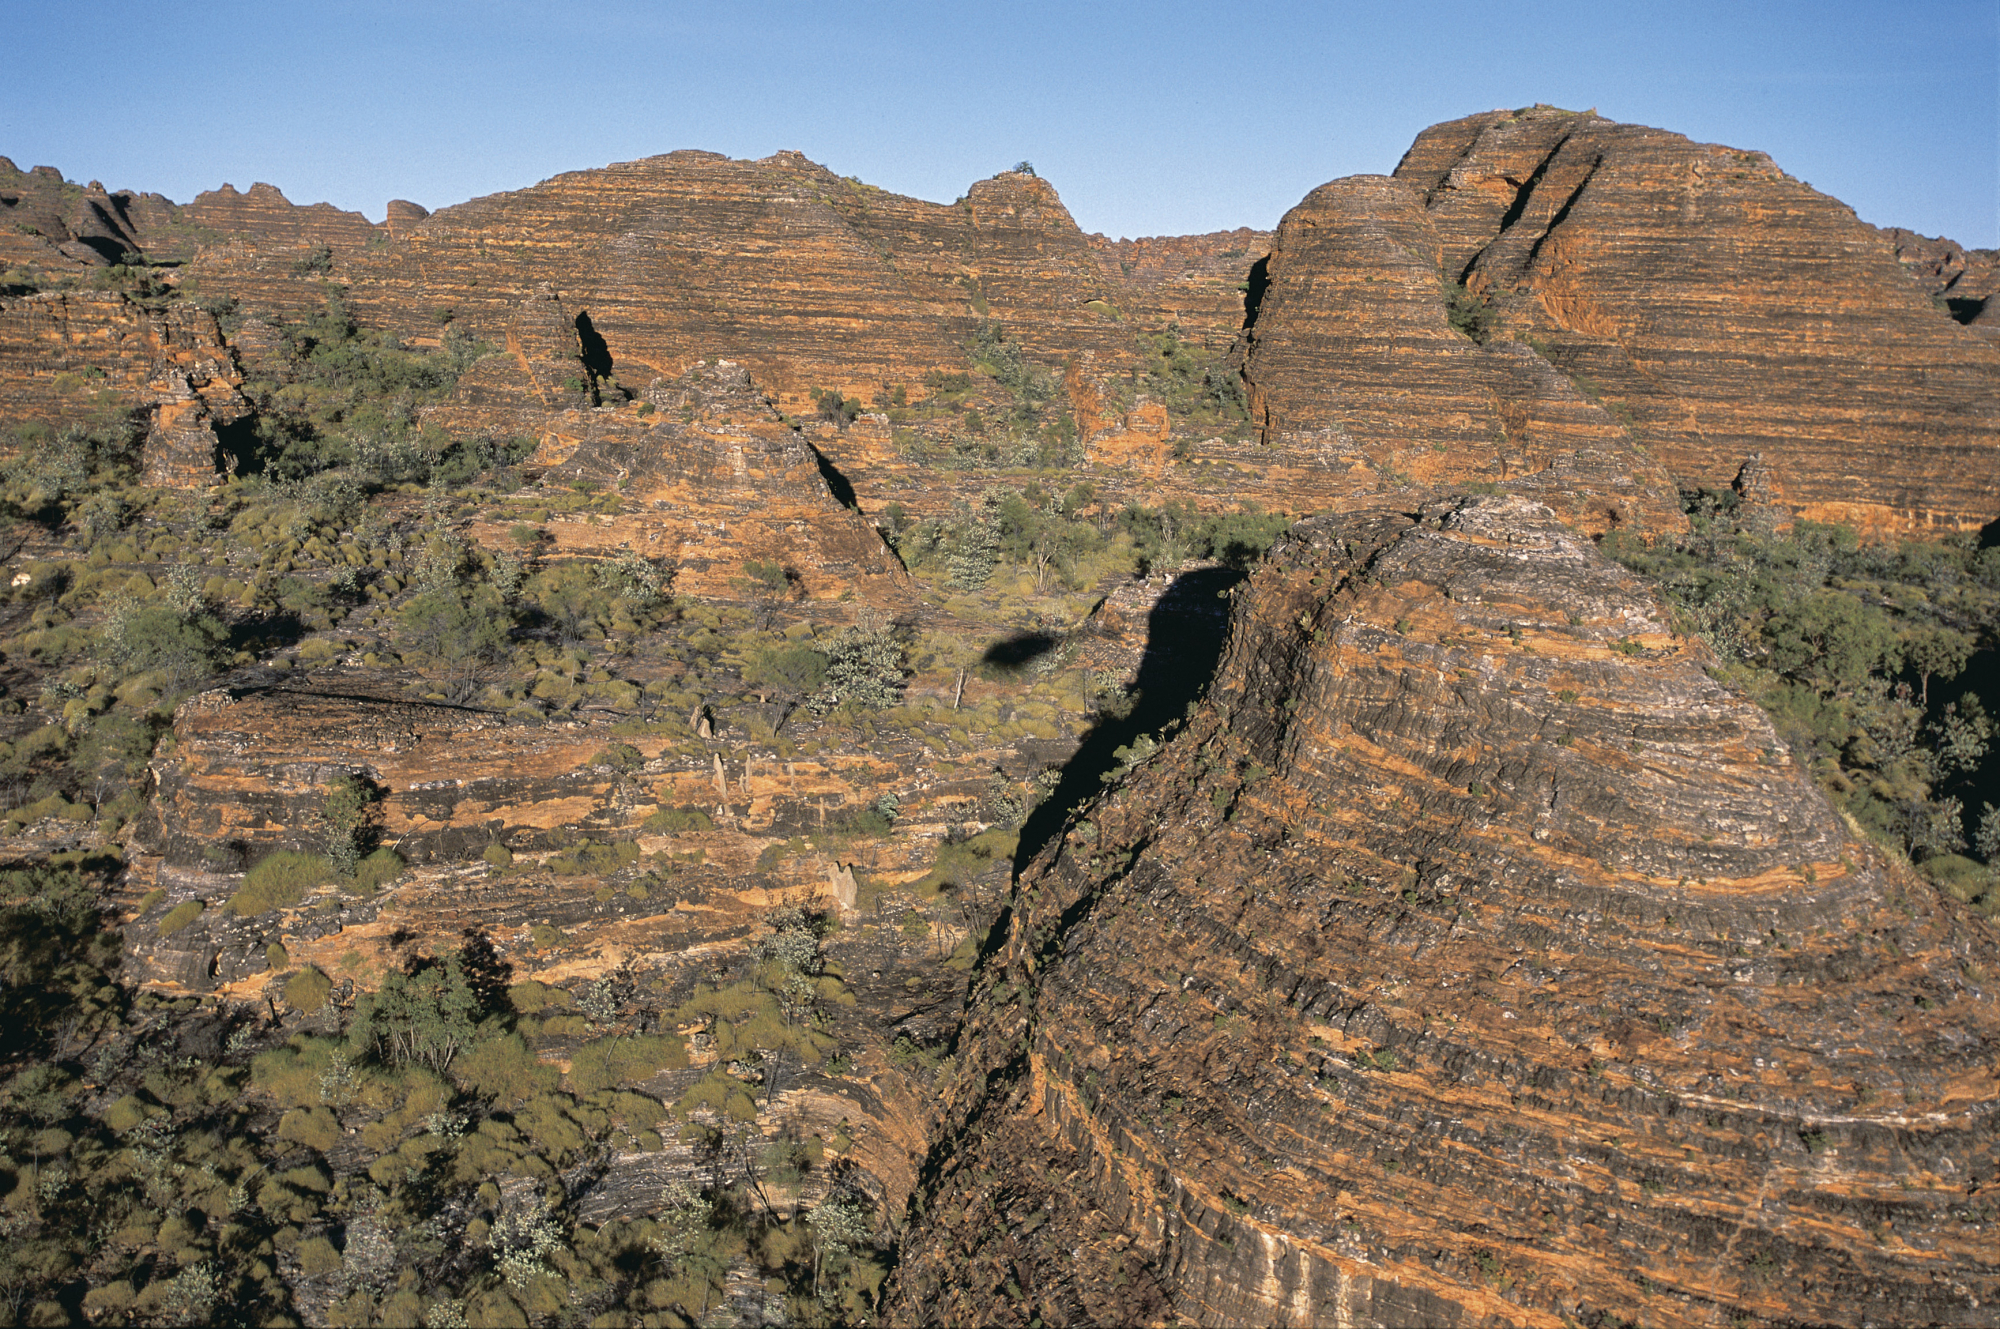 Kimberley Express | Bungle Bungle, Purnululu National Park, The Kimberley, North West, Western Australia